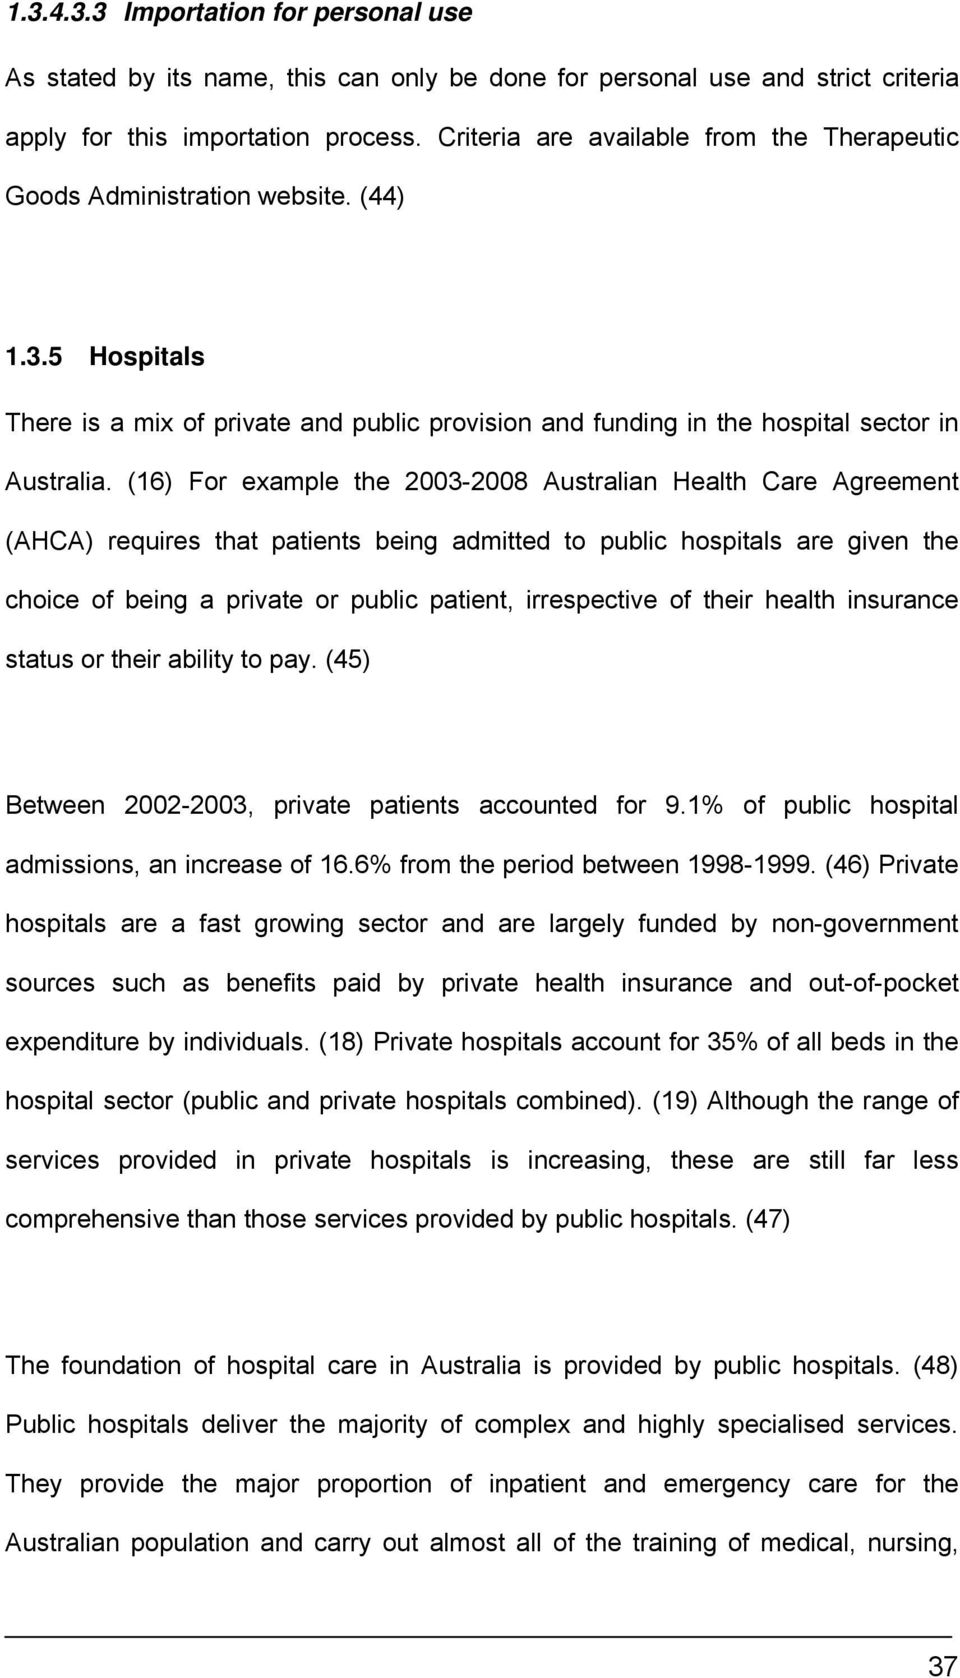 (16) For example the 2003-2008 Australian Health Care Agreement (AHCA) requires that patients being admitted to public hospitals are given the choice of being a private or public patient,